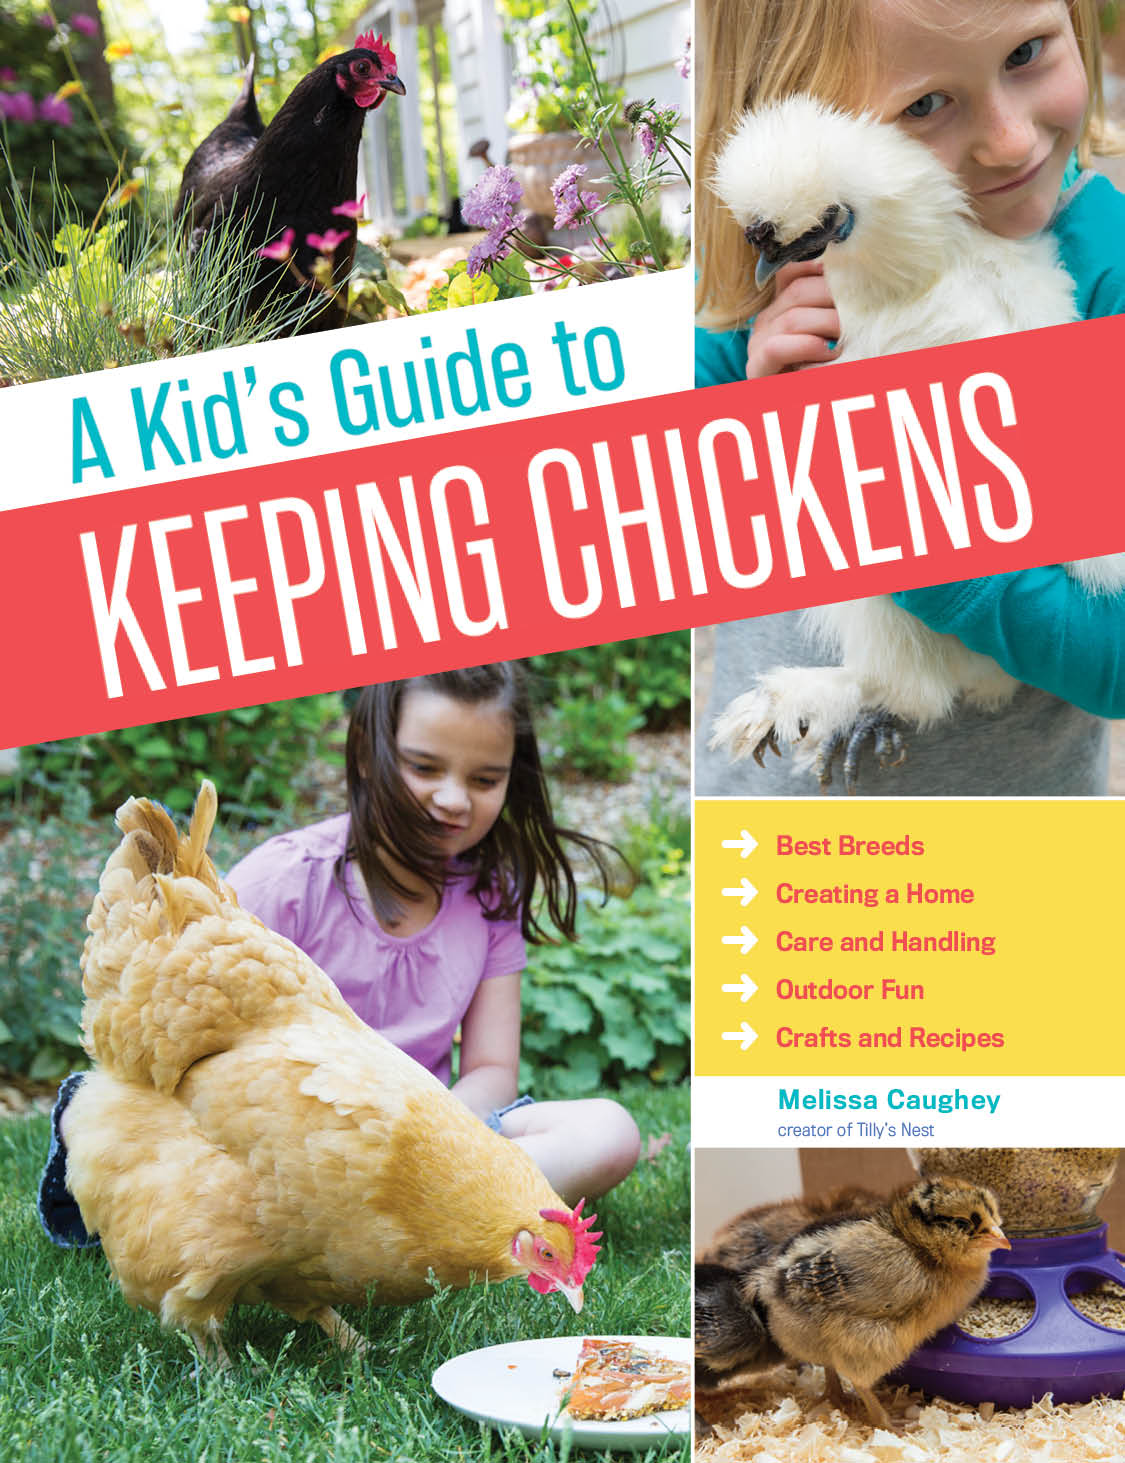 A Kid's Guide to Keeping Chickens Best Breeds, Creating a Home, Care and Handling, Outdoor Fun, Crafts and Treats - Melissa Caughey